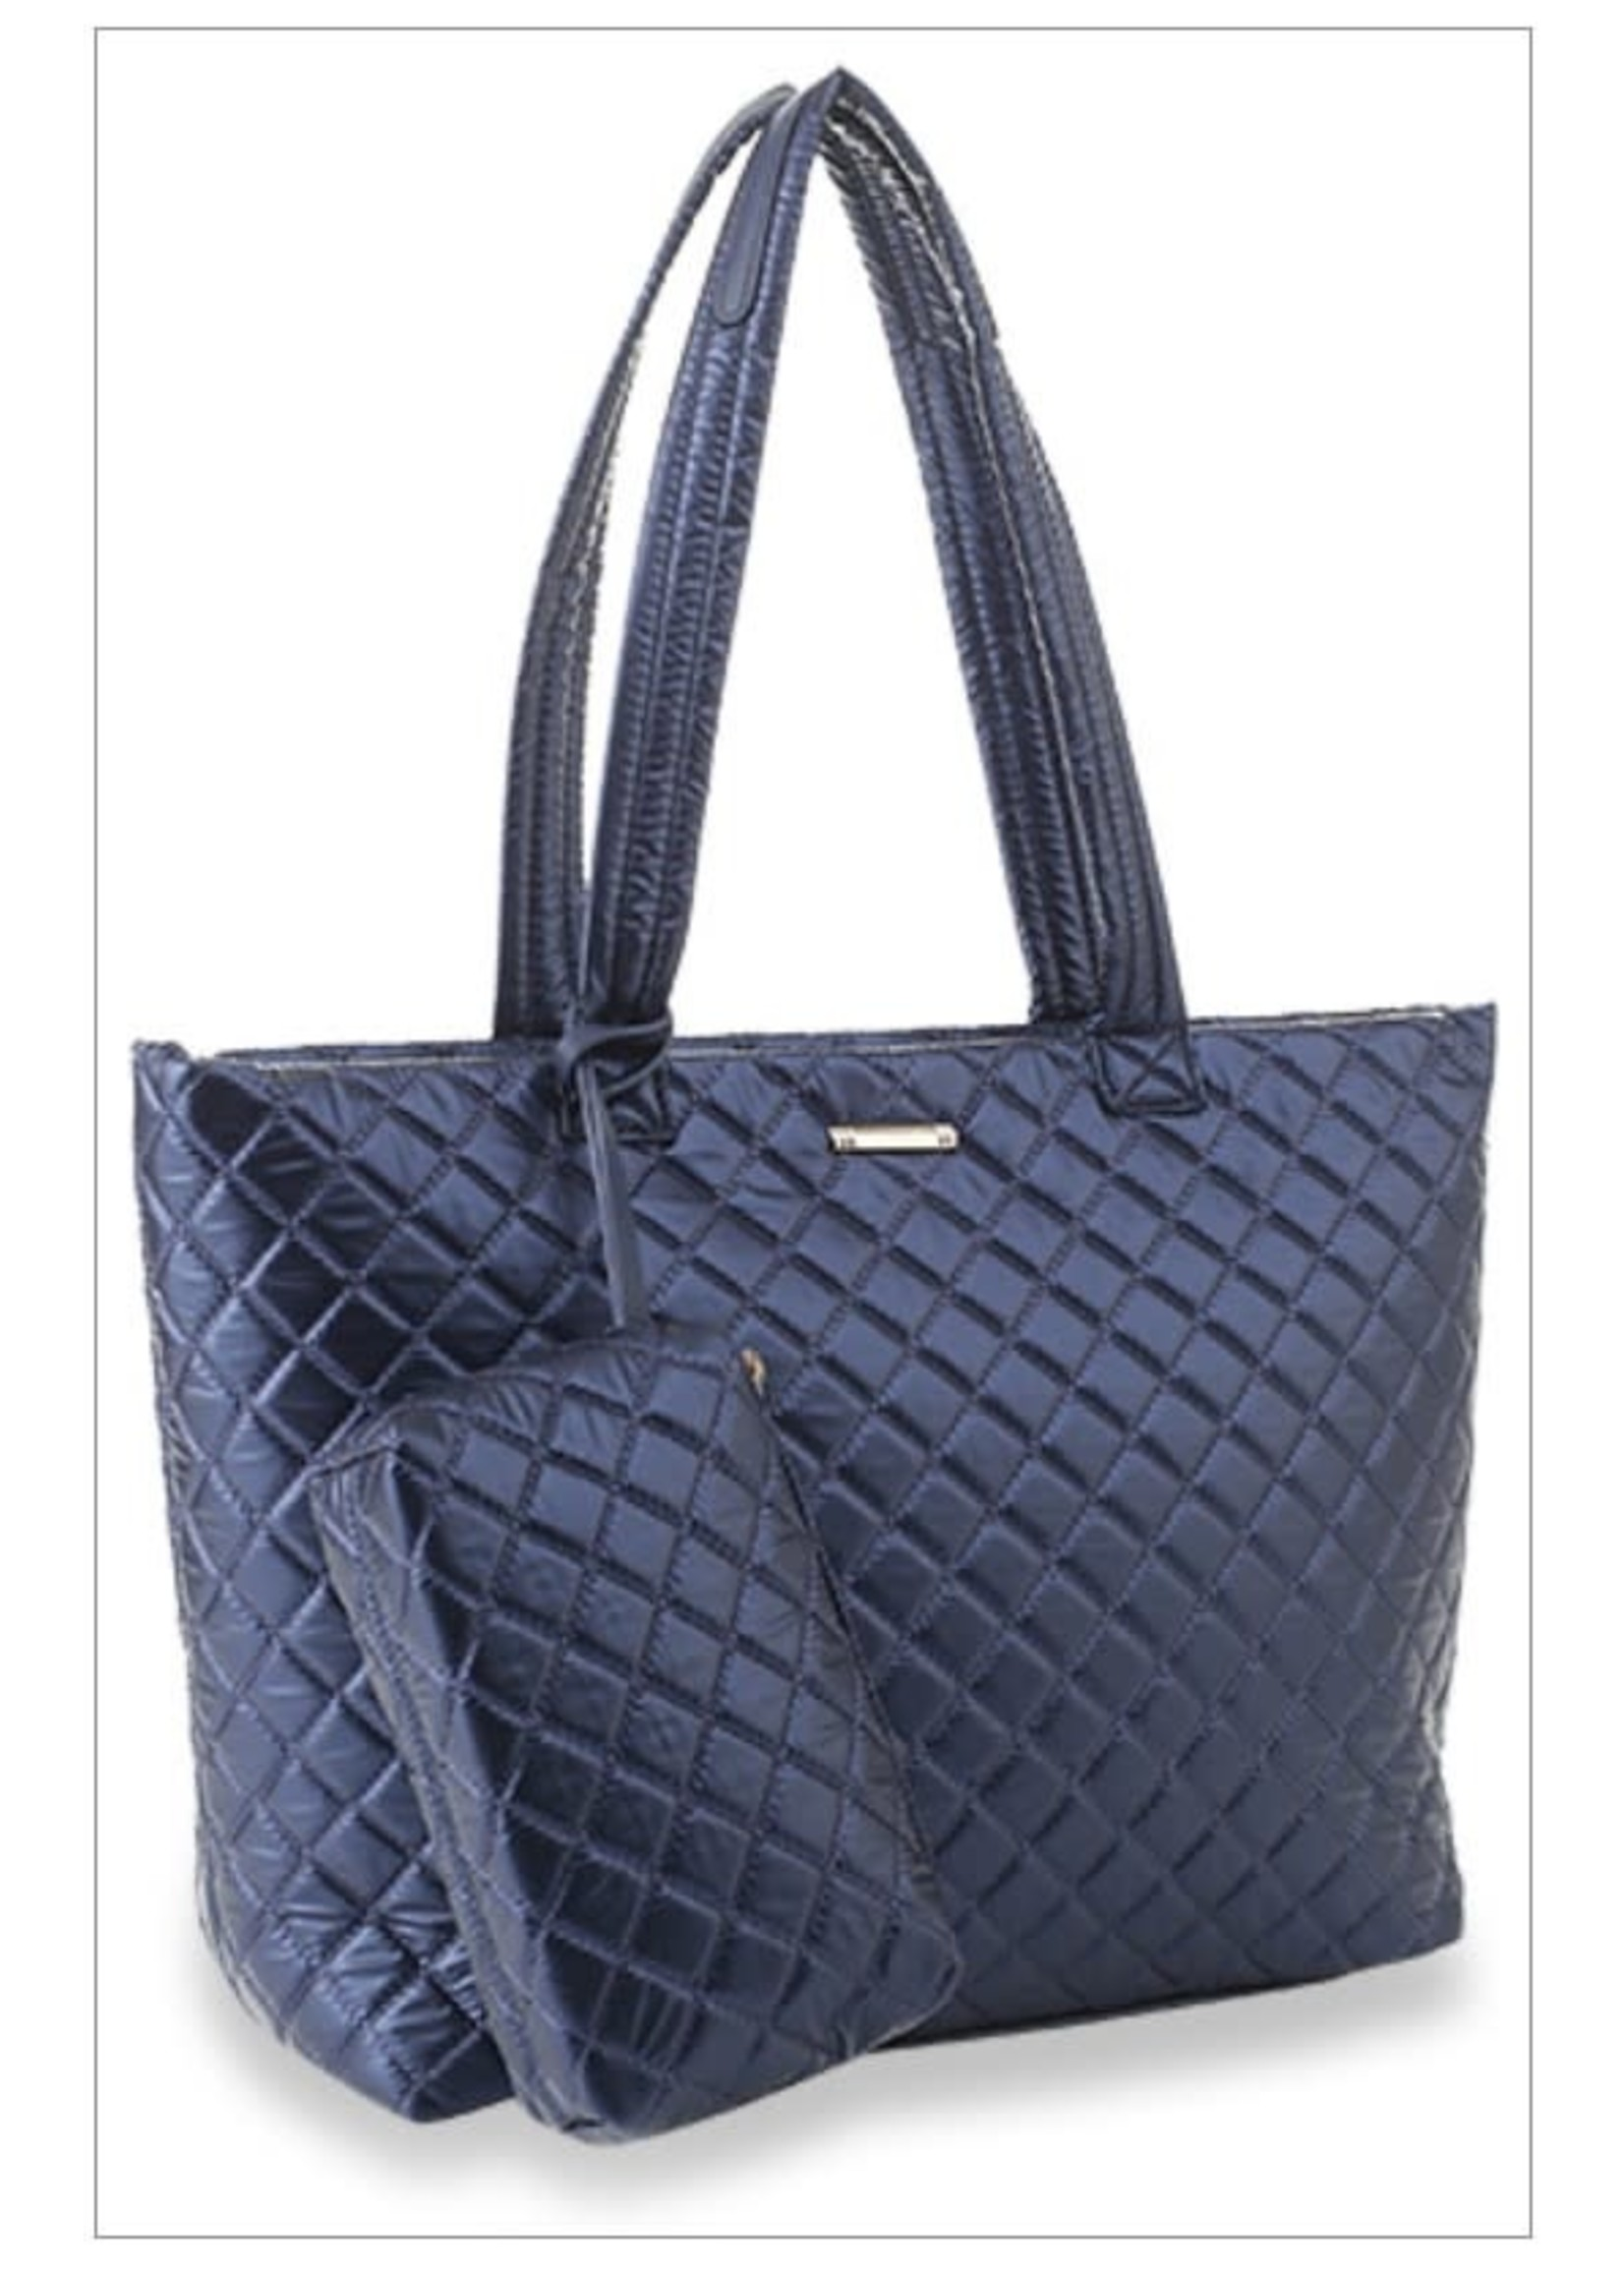 KDX Shimmer Quilted Tote 2pc Set